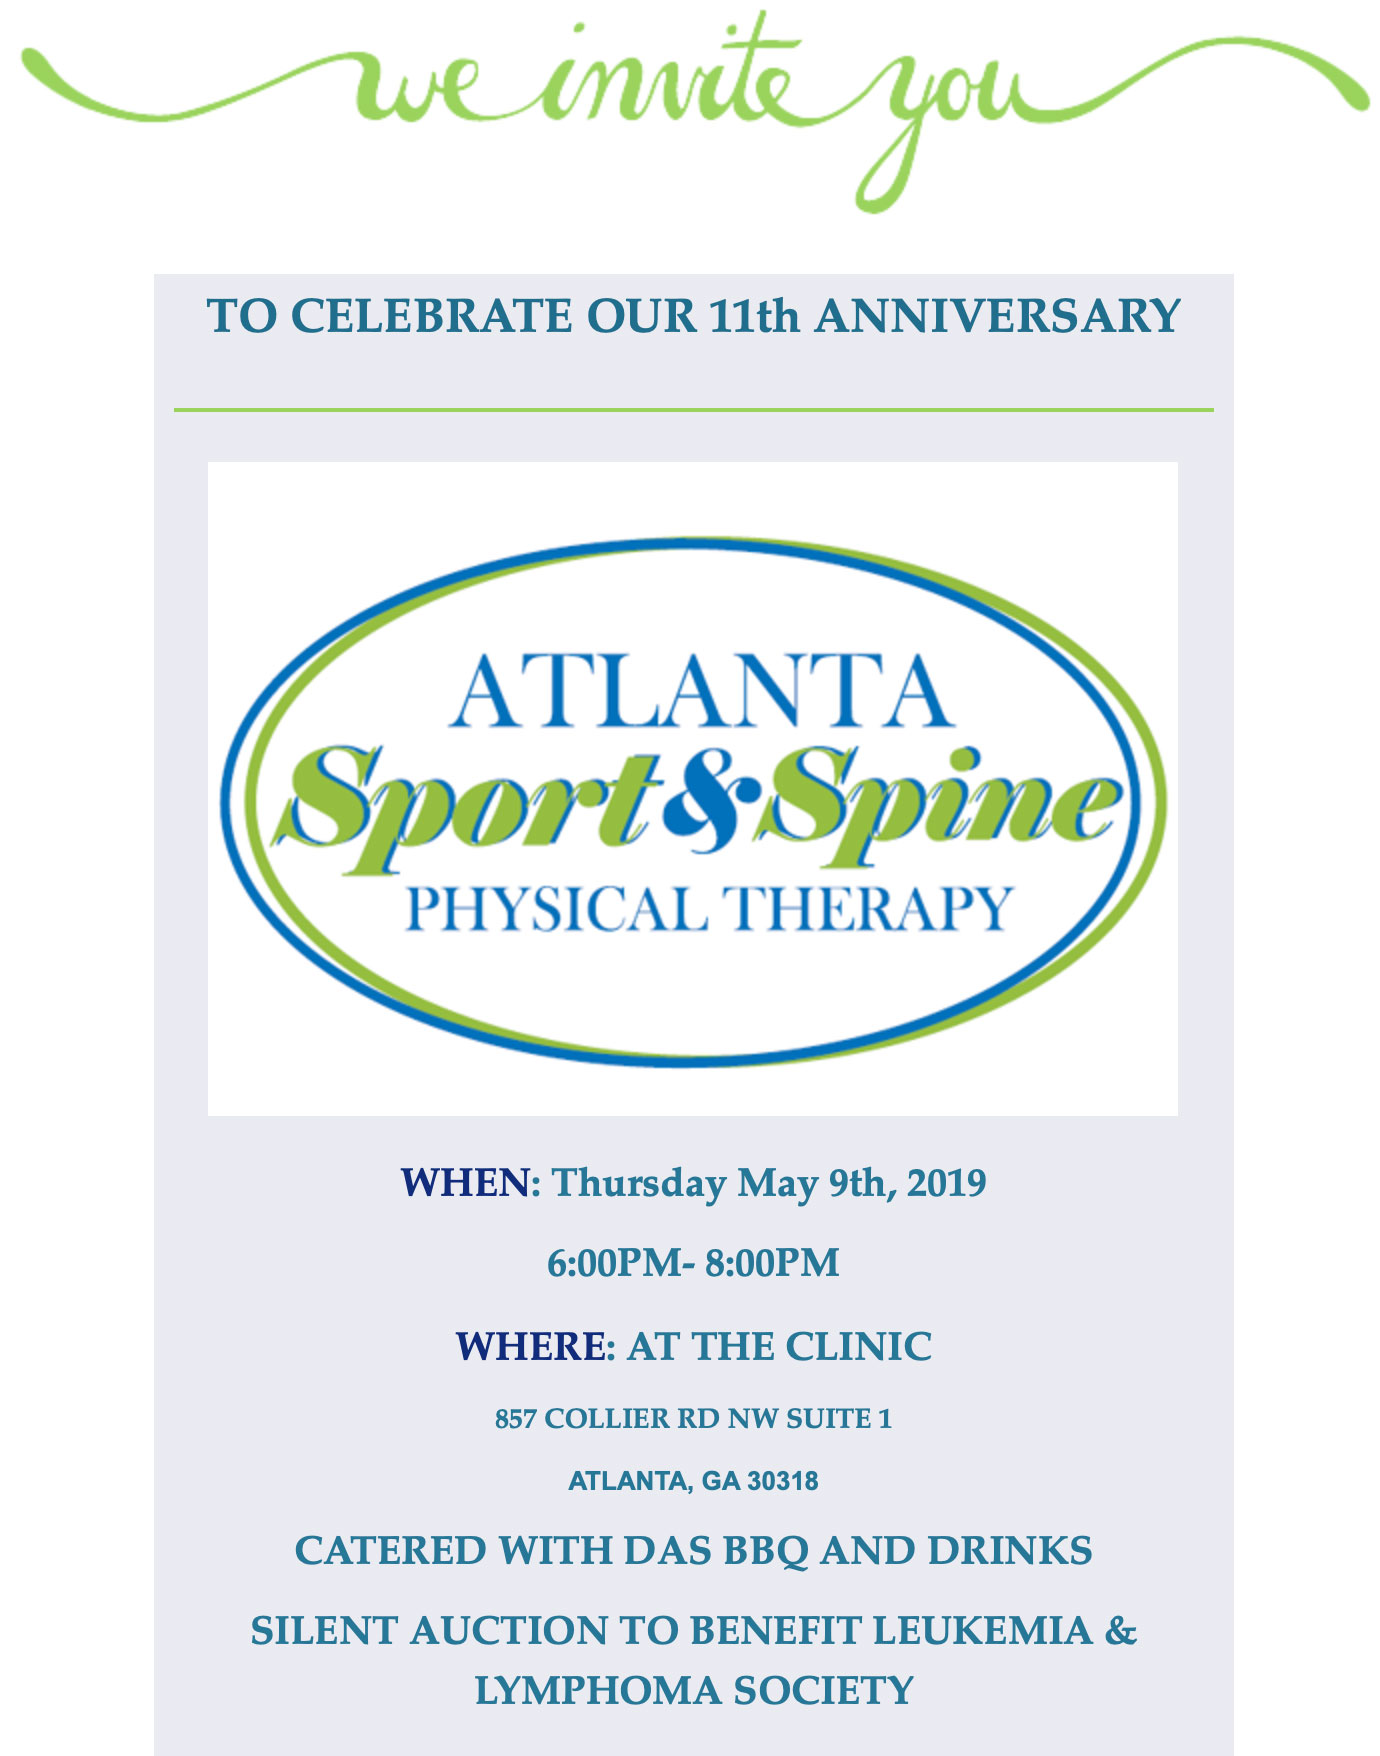 Atlanta Sport & Spine Physical Therapy 11 Year Anniversary!